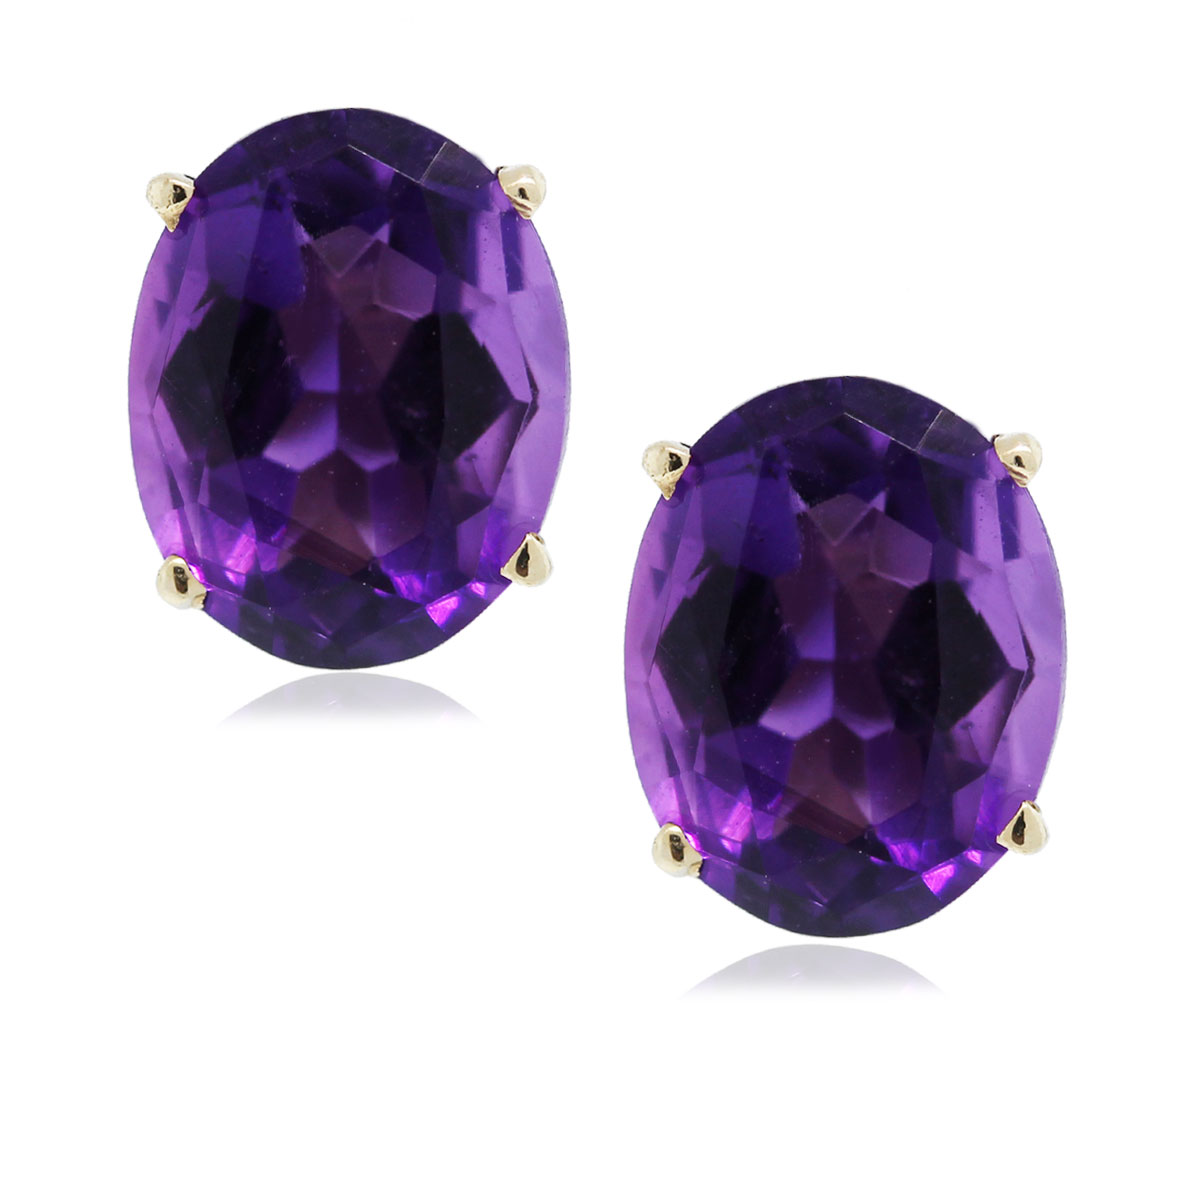 14k yellow gold oval cut amethyst stud earrings boca raton. Black Bedroom Furniture Sets. Home Design Ideas